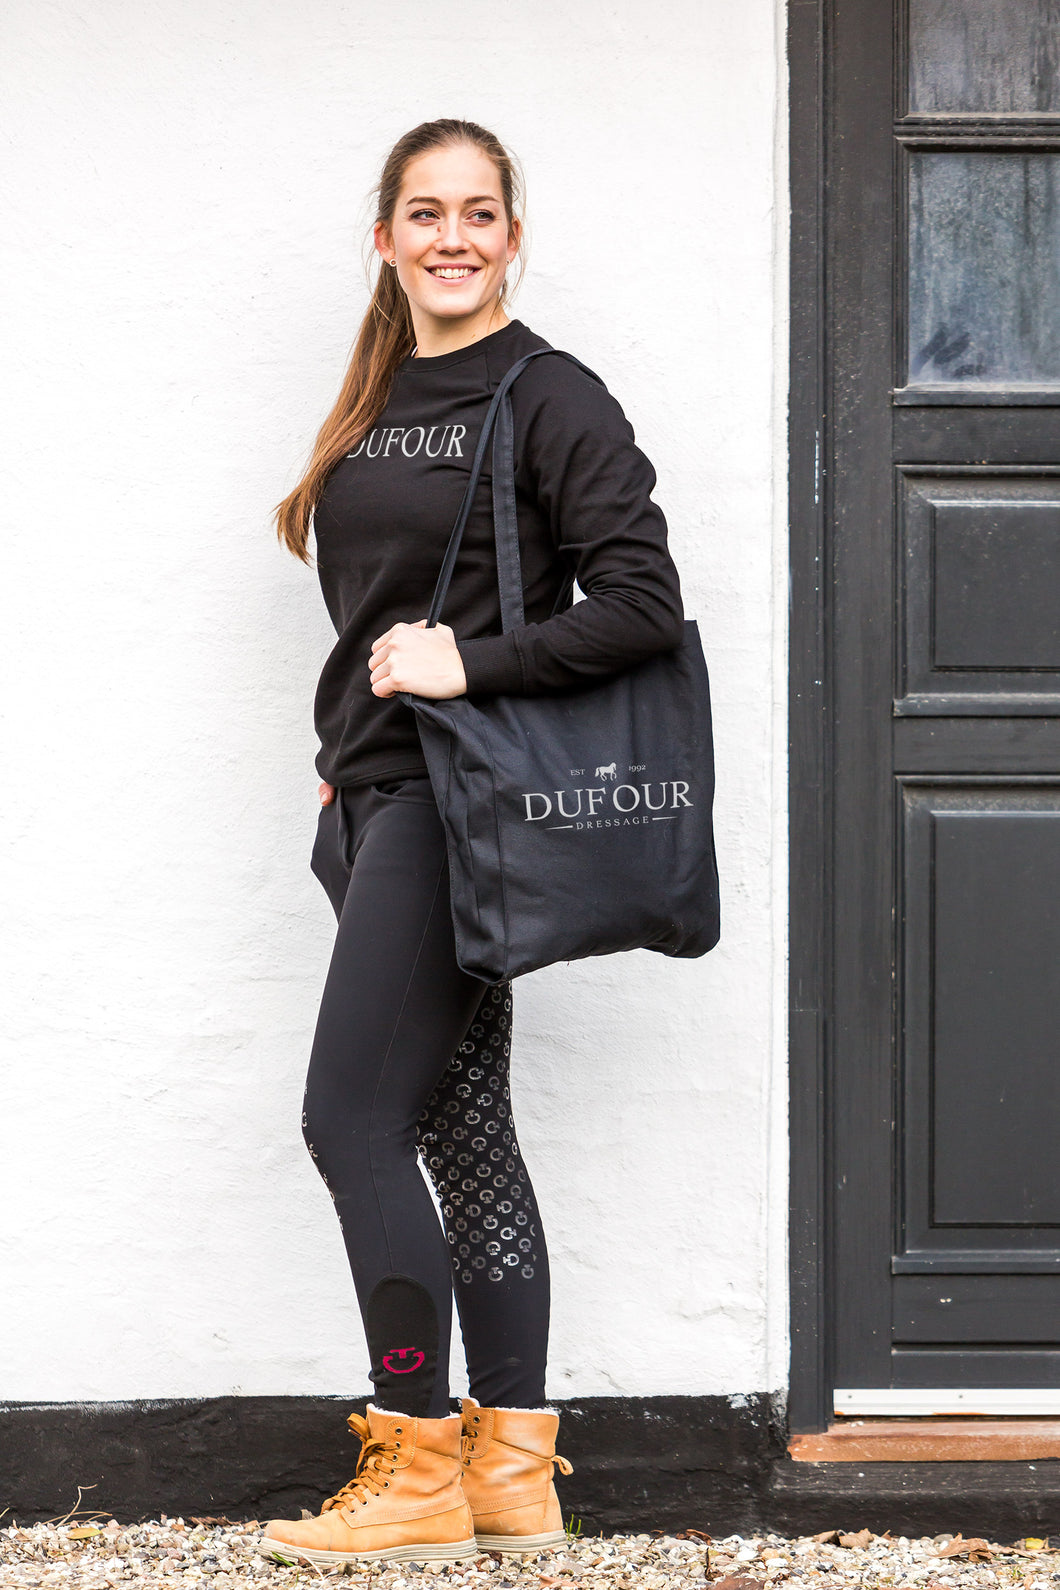 Dufour Canter Sweatshirt and tote bag with logo Trolle pants